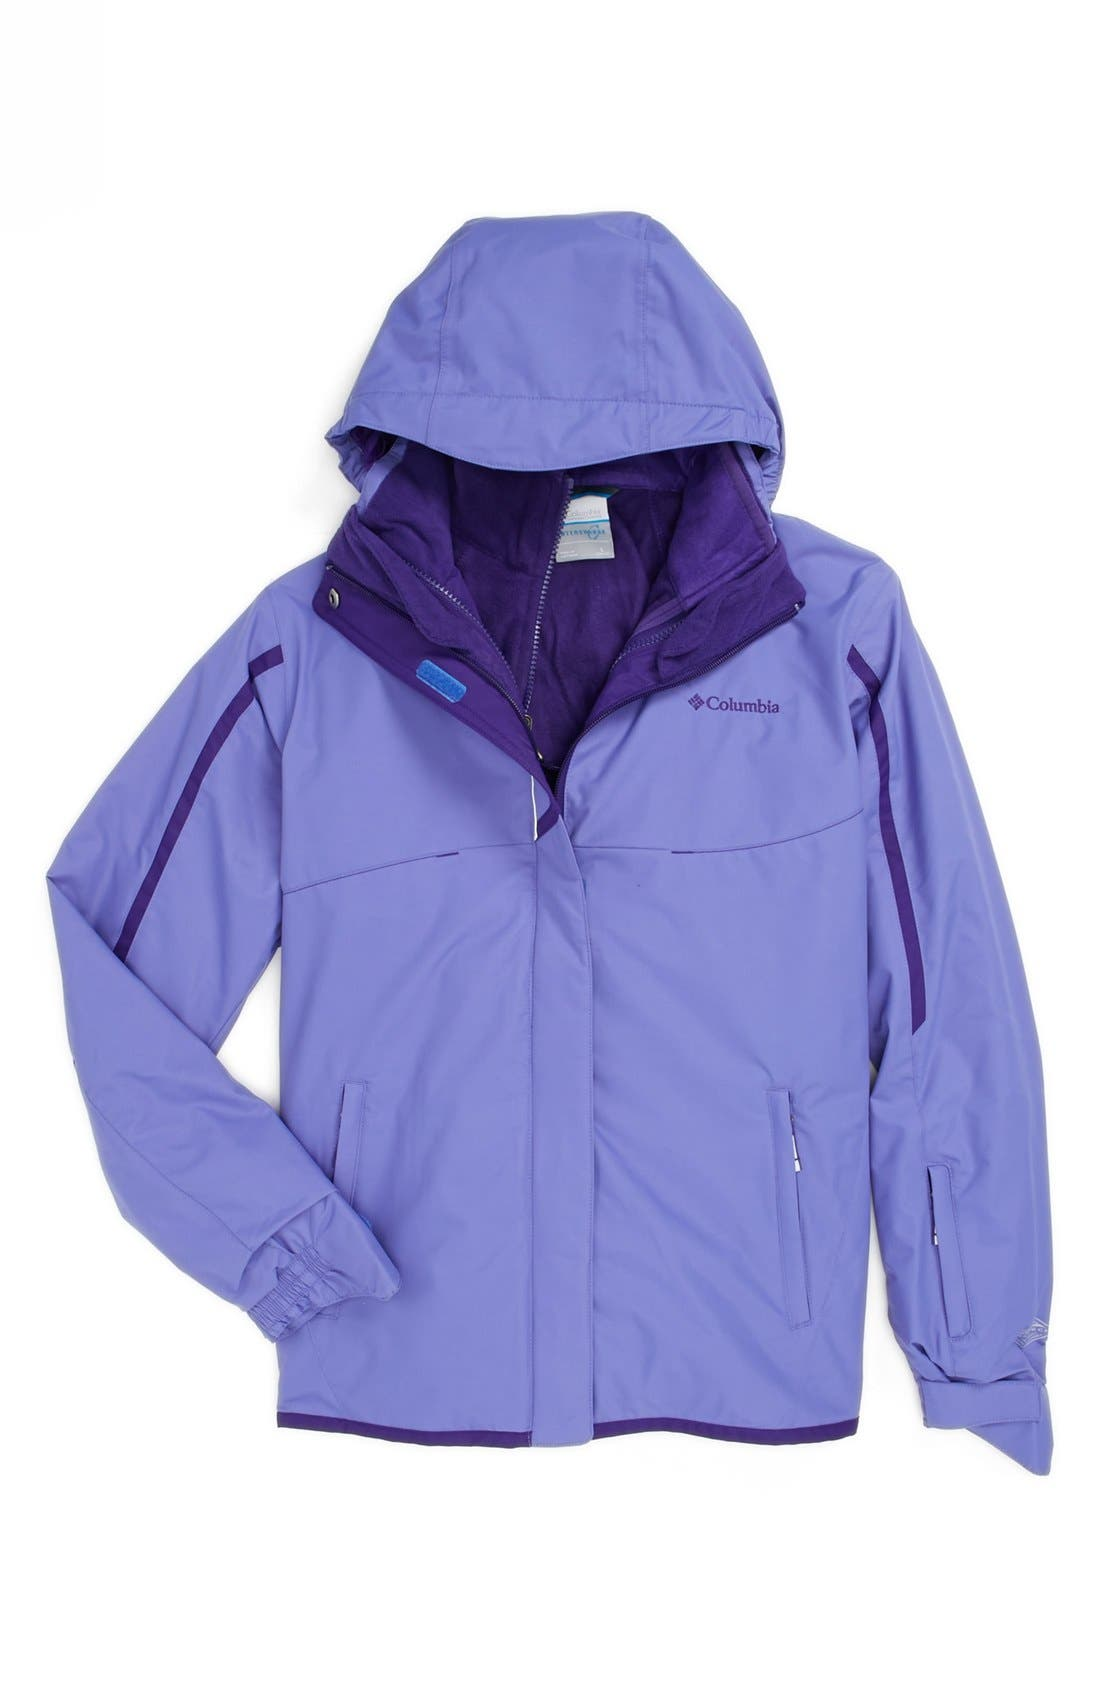 Alternate Image 1 Selected - Columbia 'Bugaboo Interchange' Waterproof 3-in-1 Jacket (Big Girls)